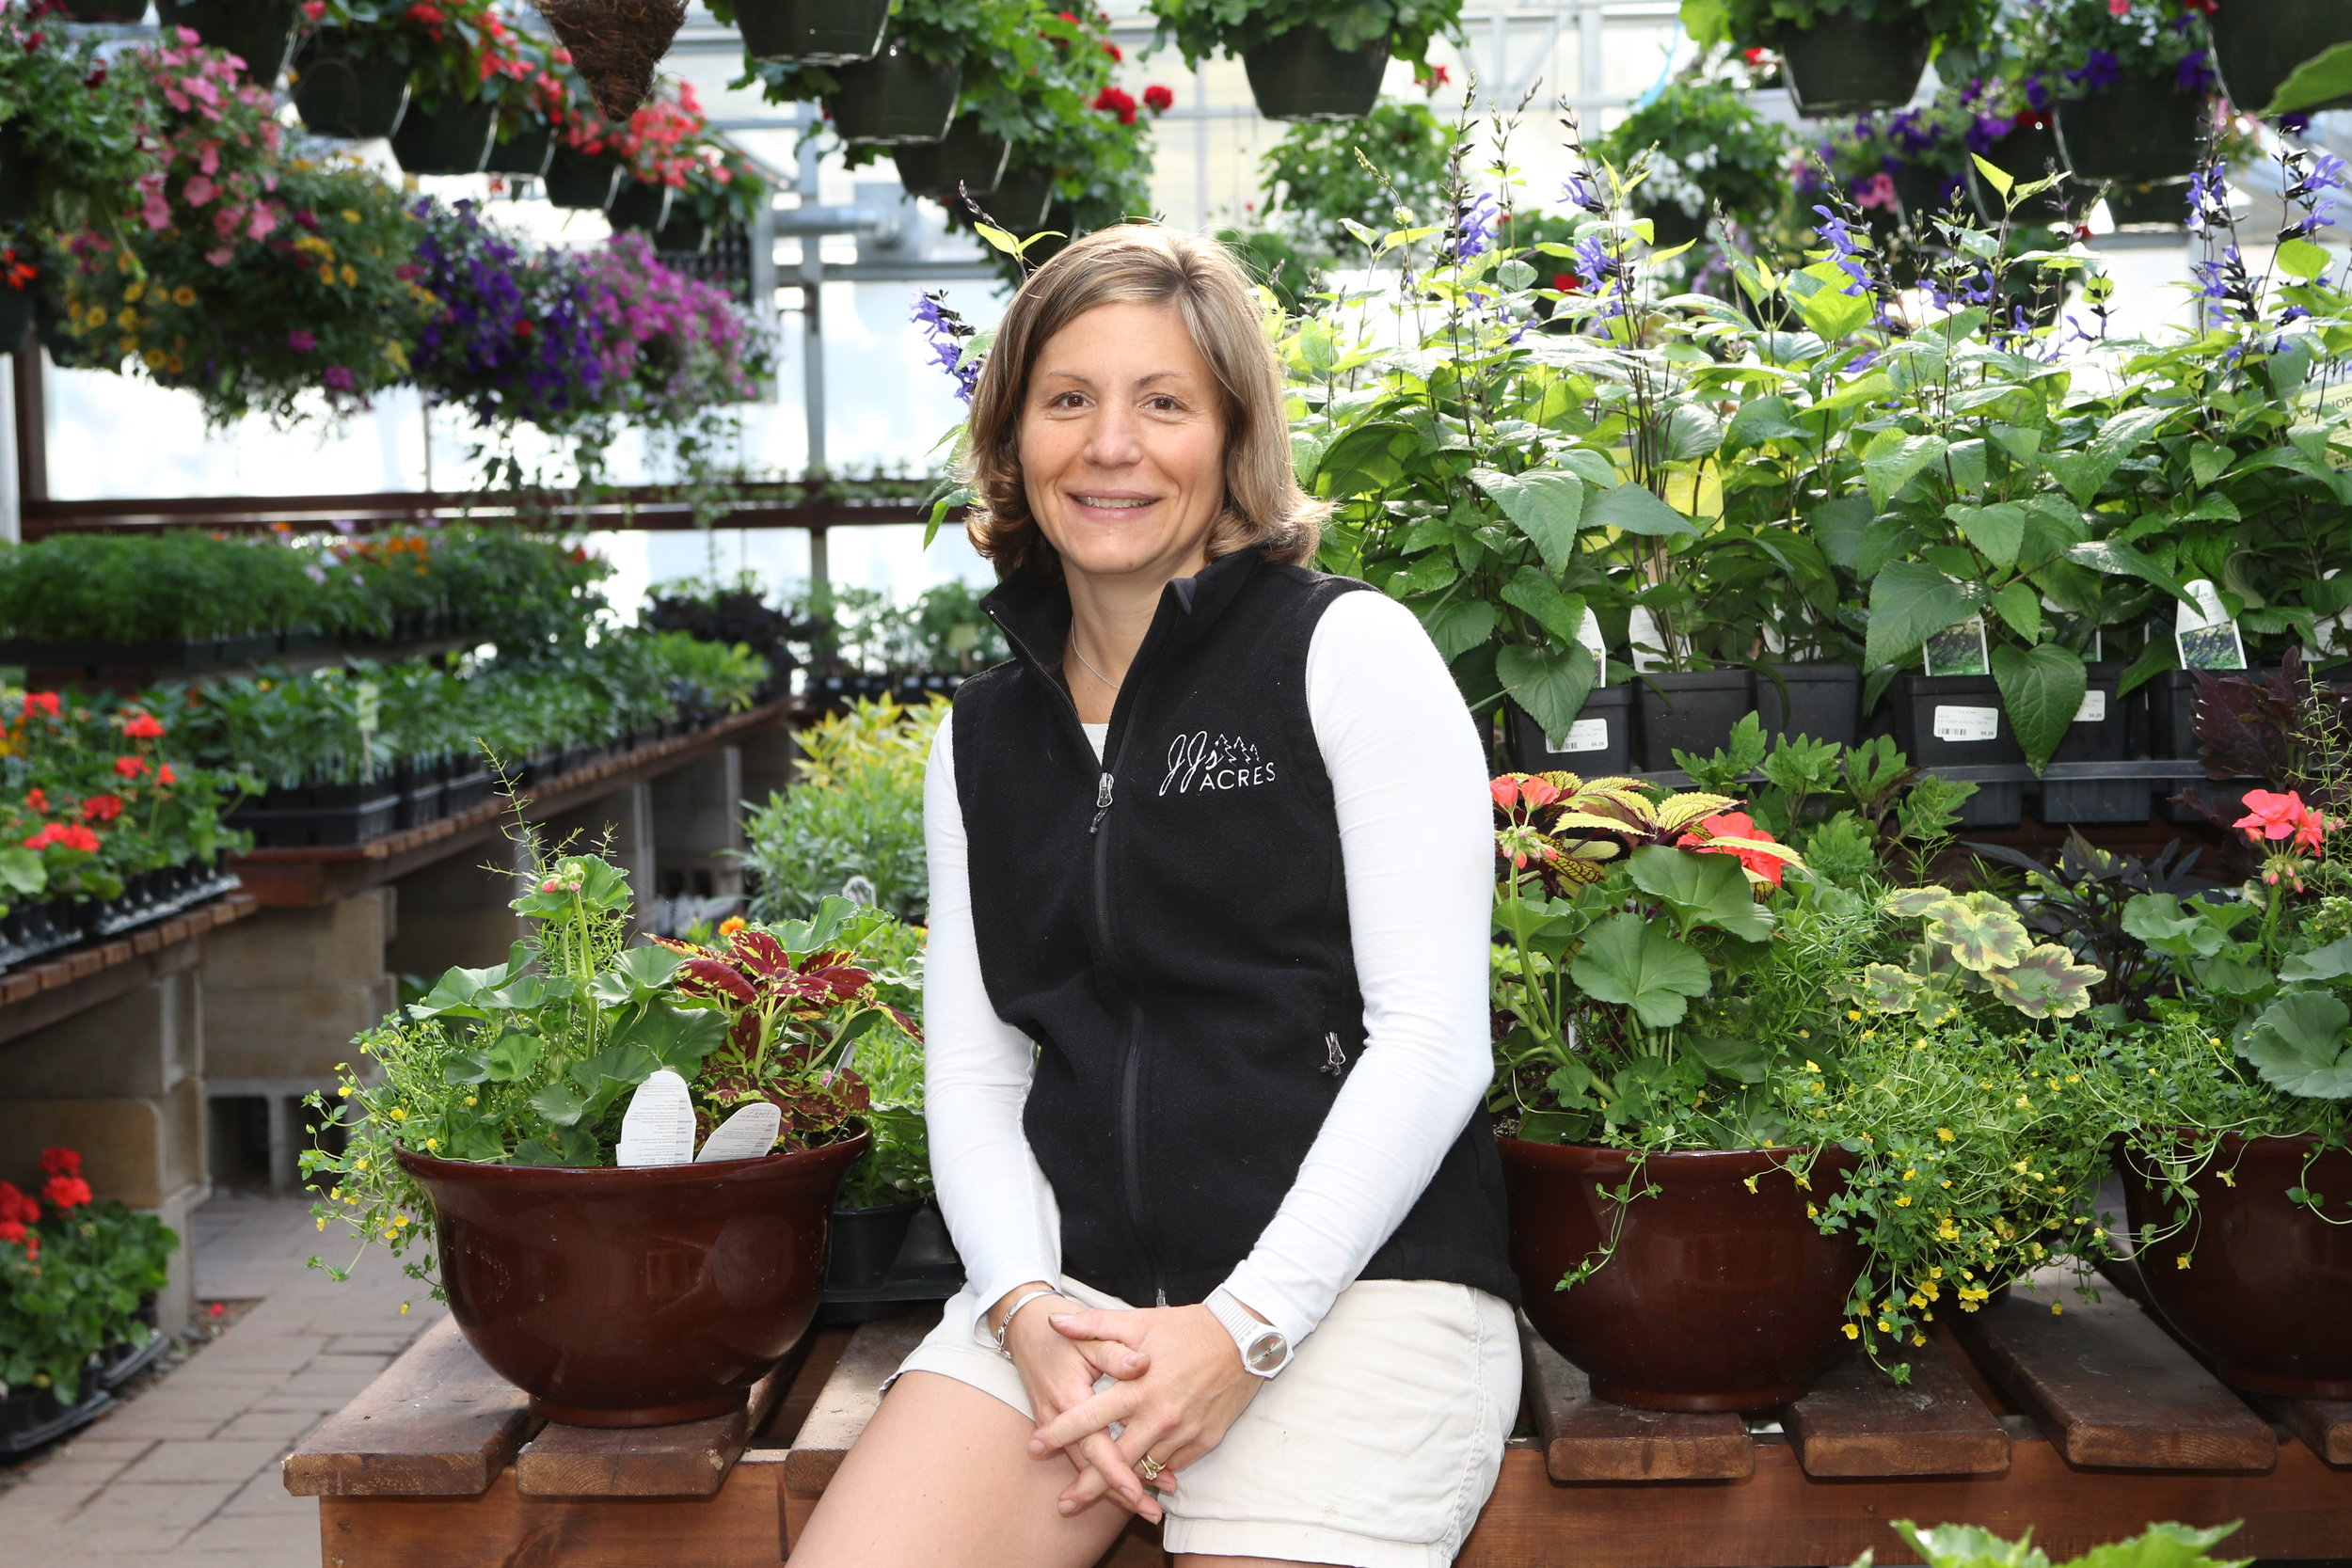 JUDY - JUDY - grew up vacationing in Minocqua. Her family bought plants from JJ's Acres since she was a little girl. When she married Jack she said she'd give the business 3 years to determine whether or not she liked it, she's been here since 1999 and LOVES every day she spends at the Shop!